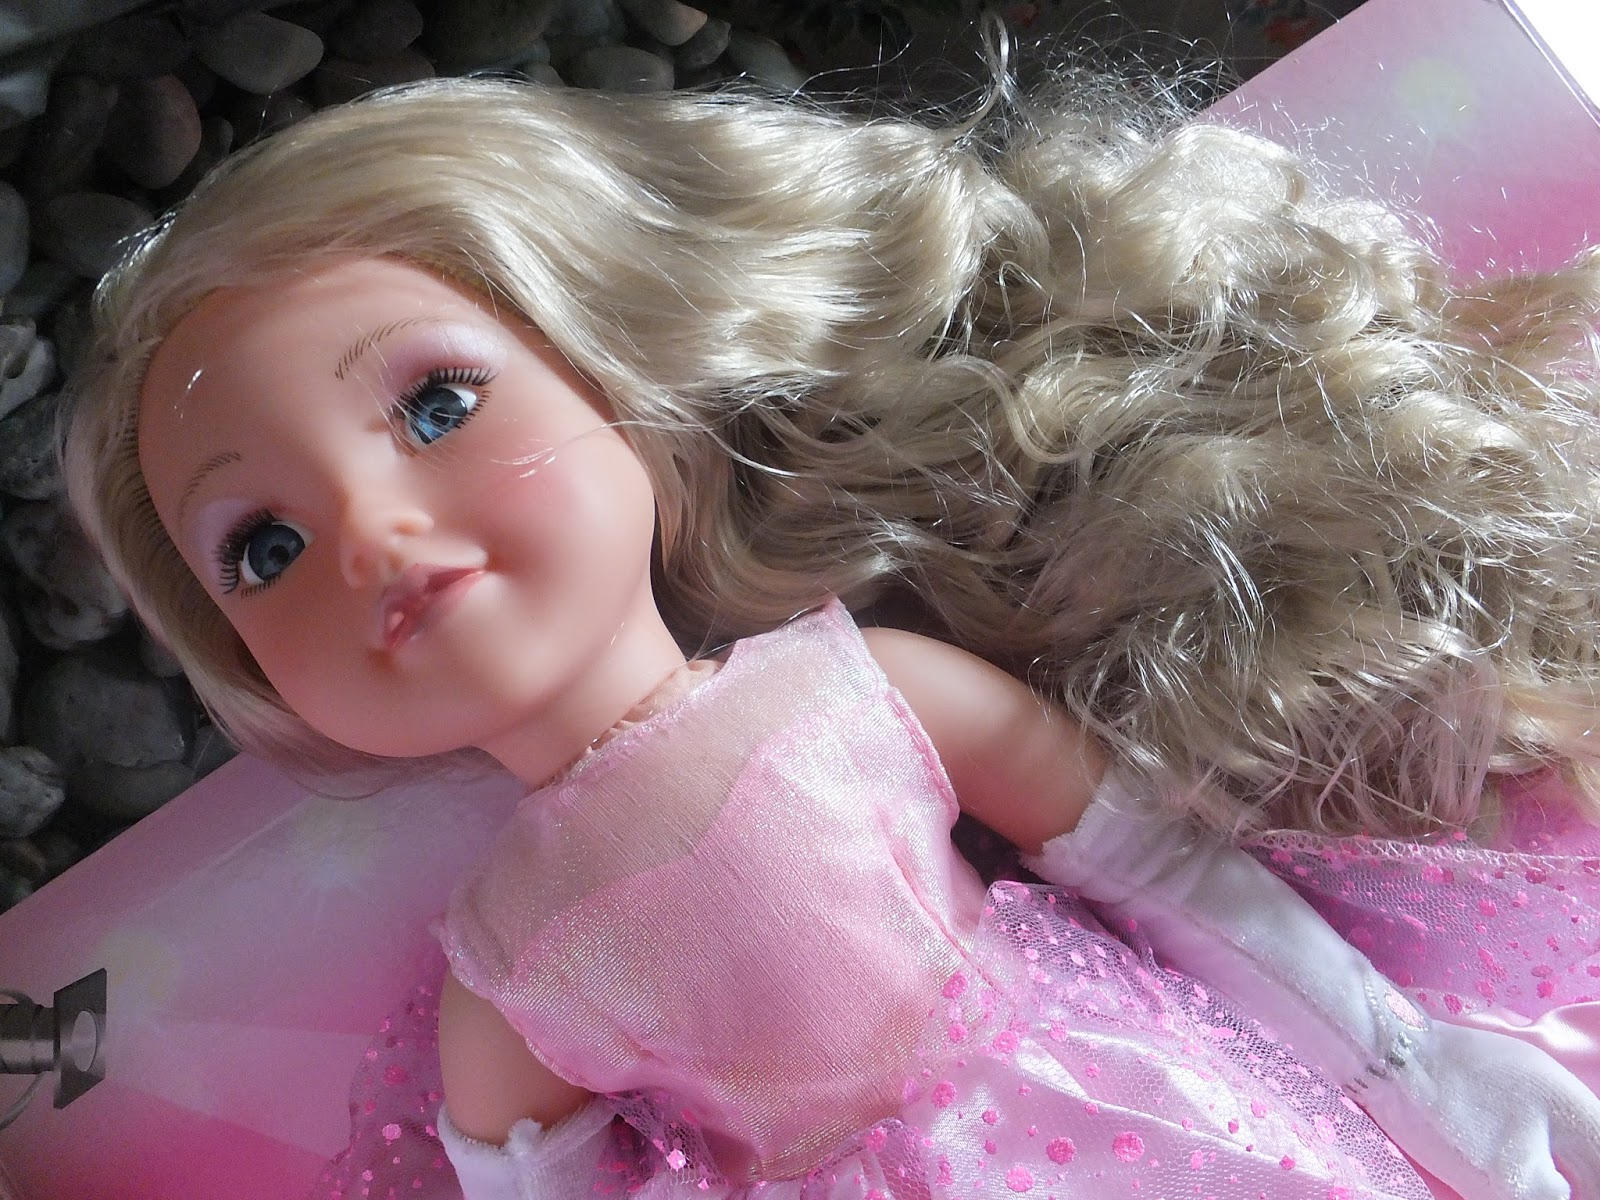 Review: Chad Valley Design a Friend Model Doll - Tiffany